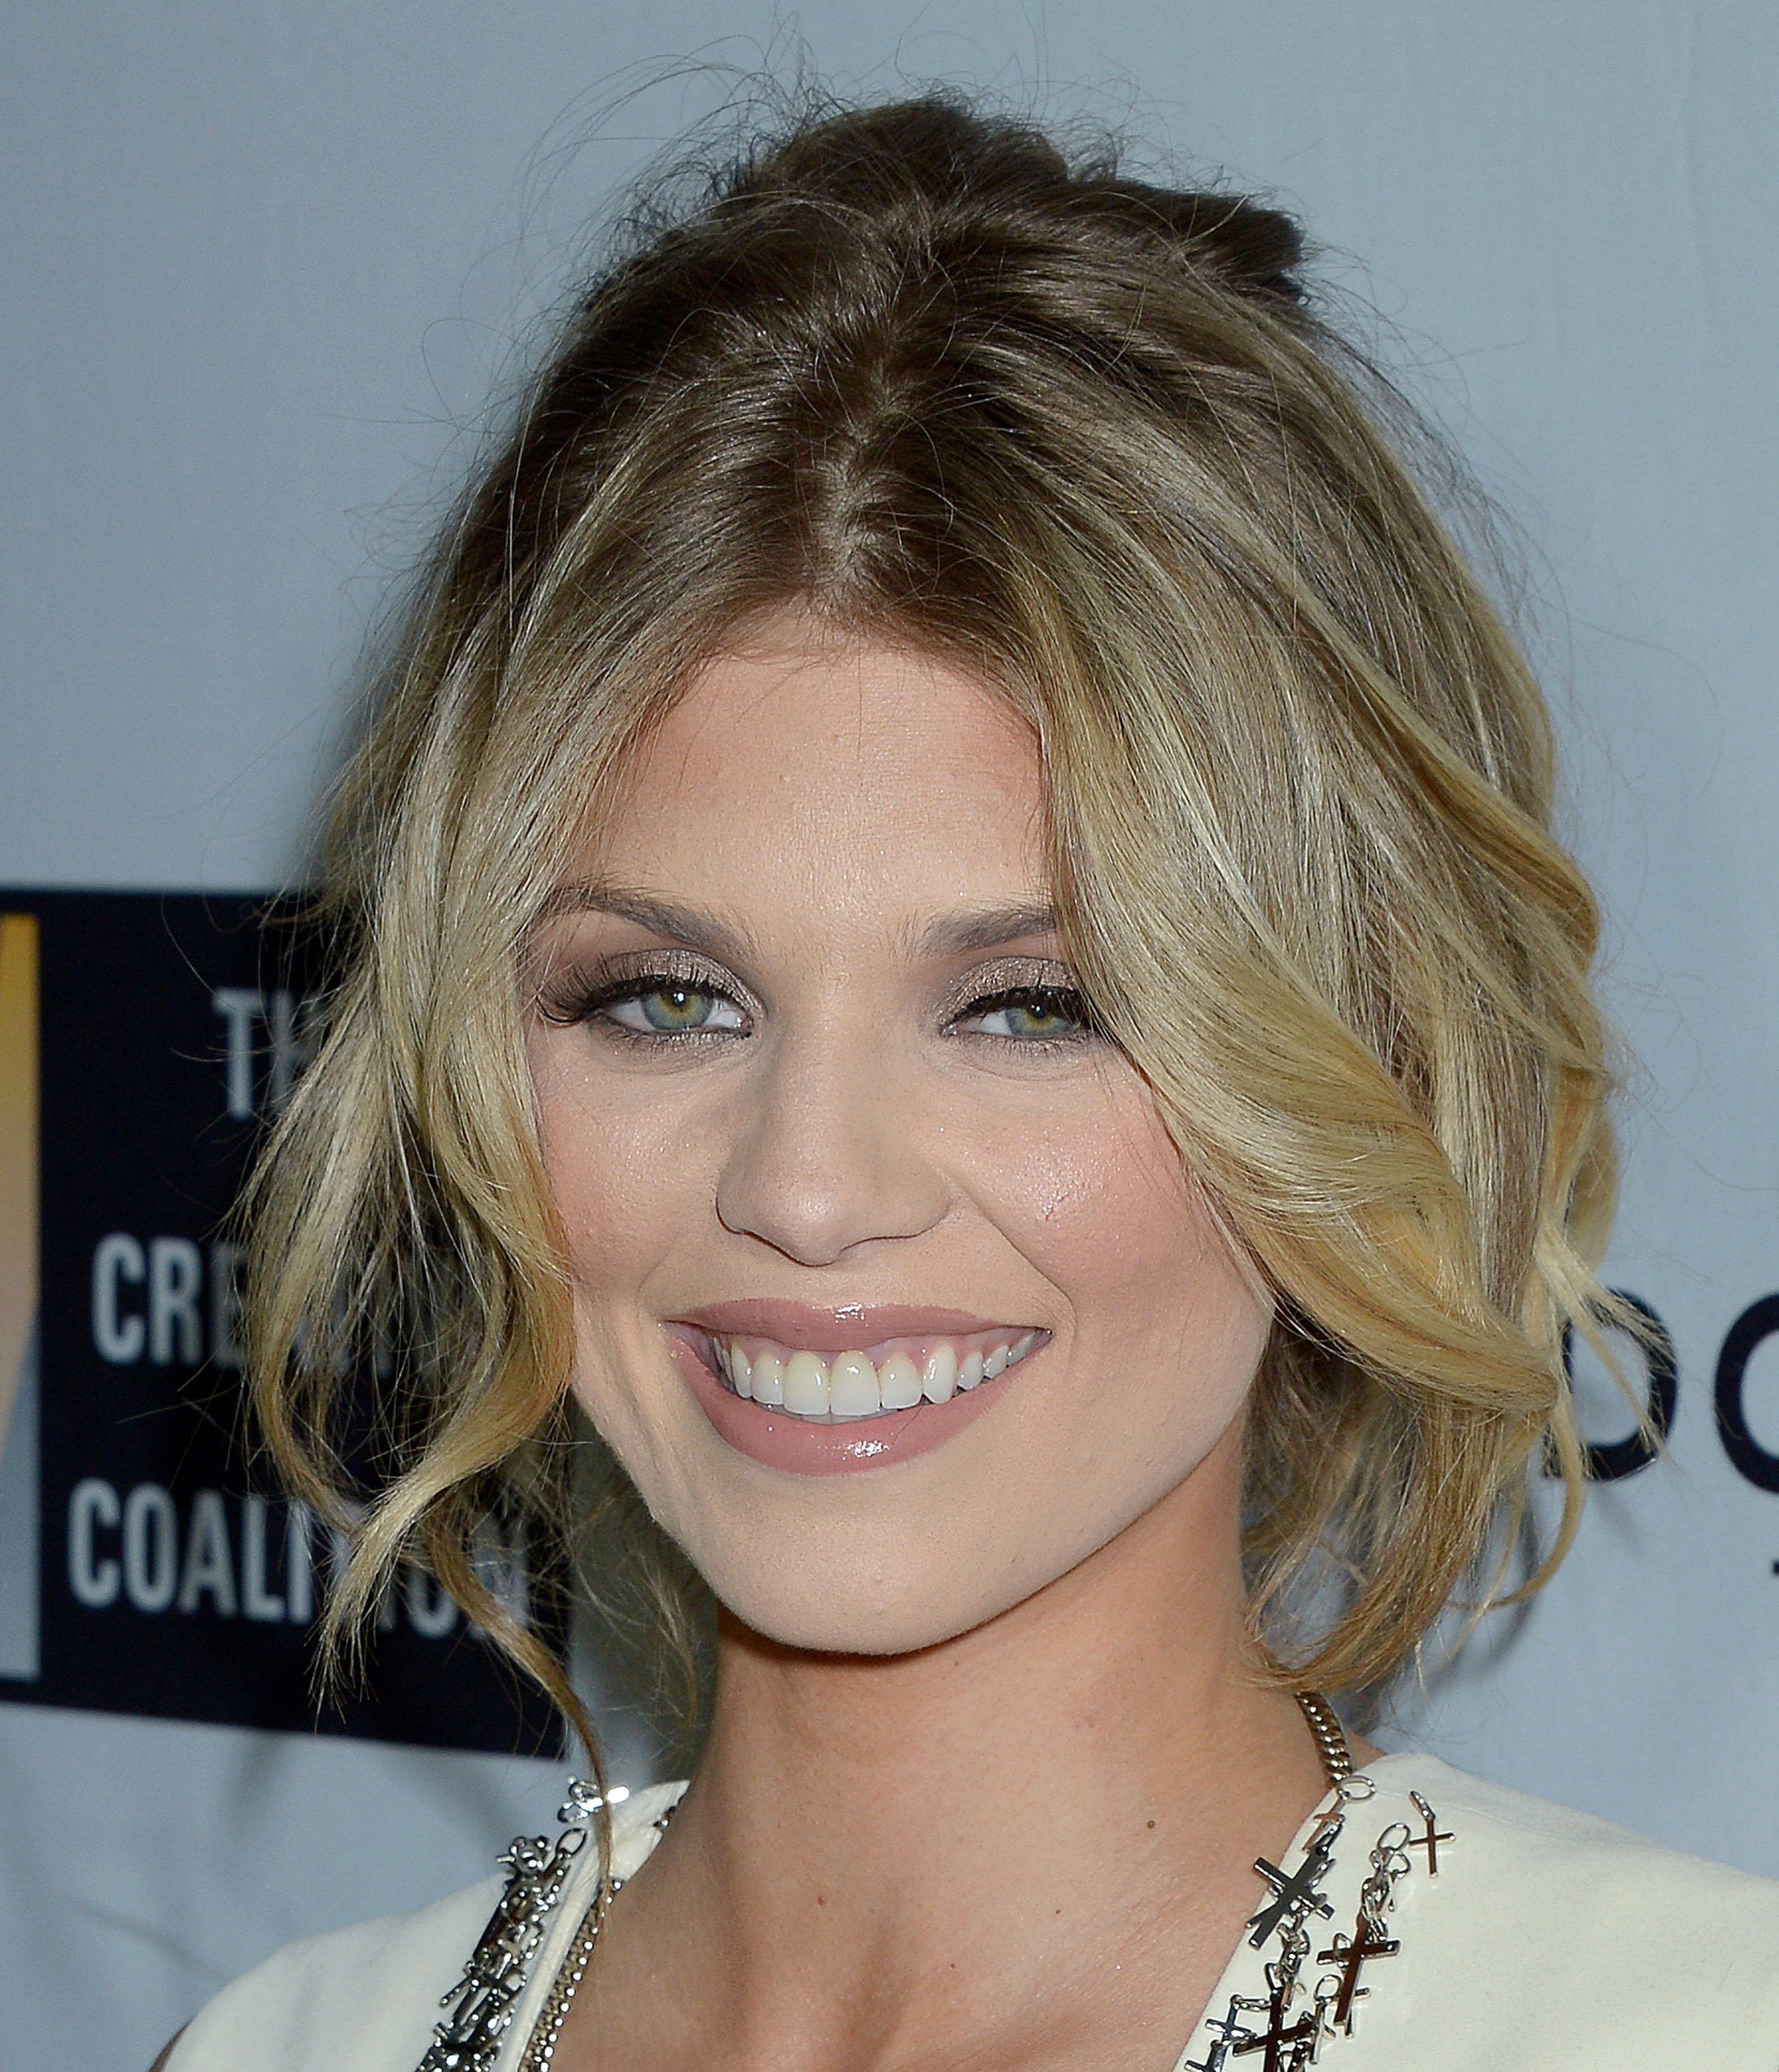 Opinion Annalynne mccord twitter